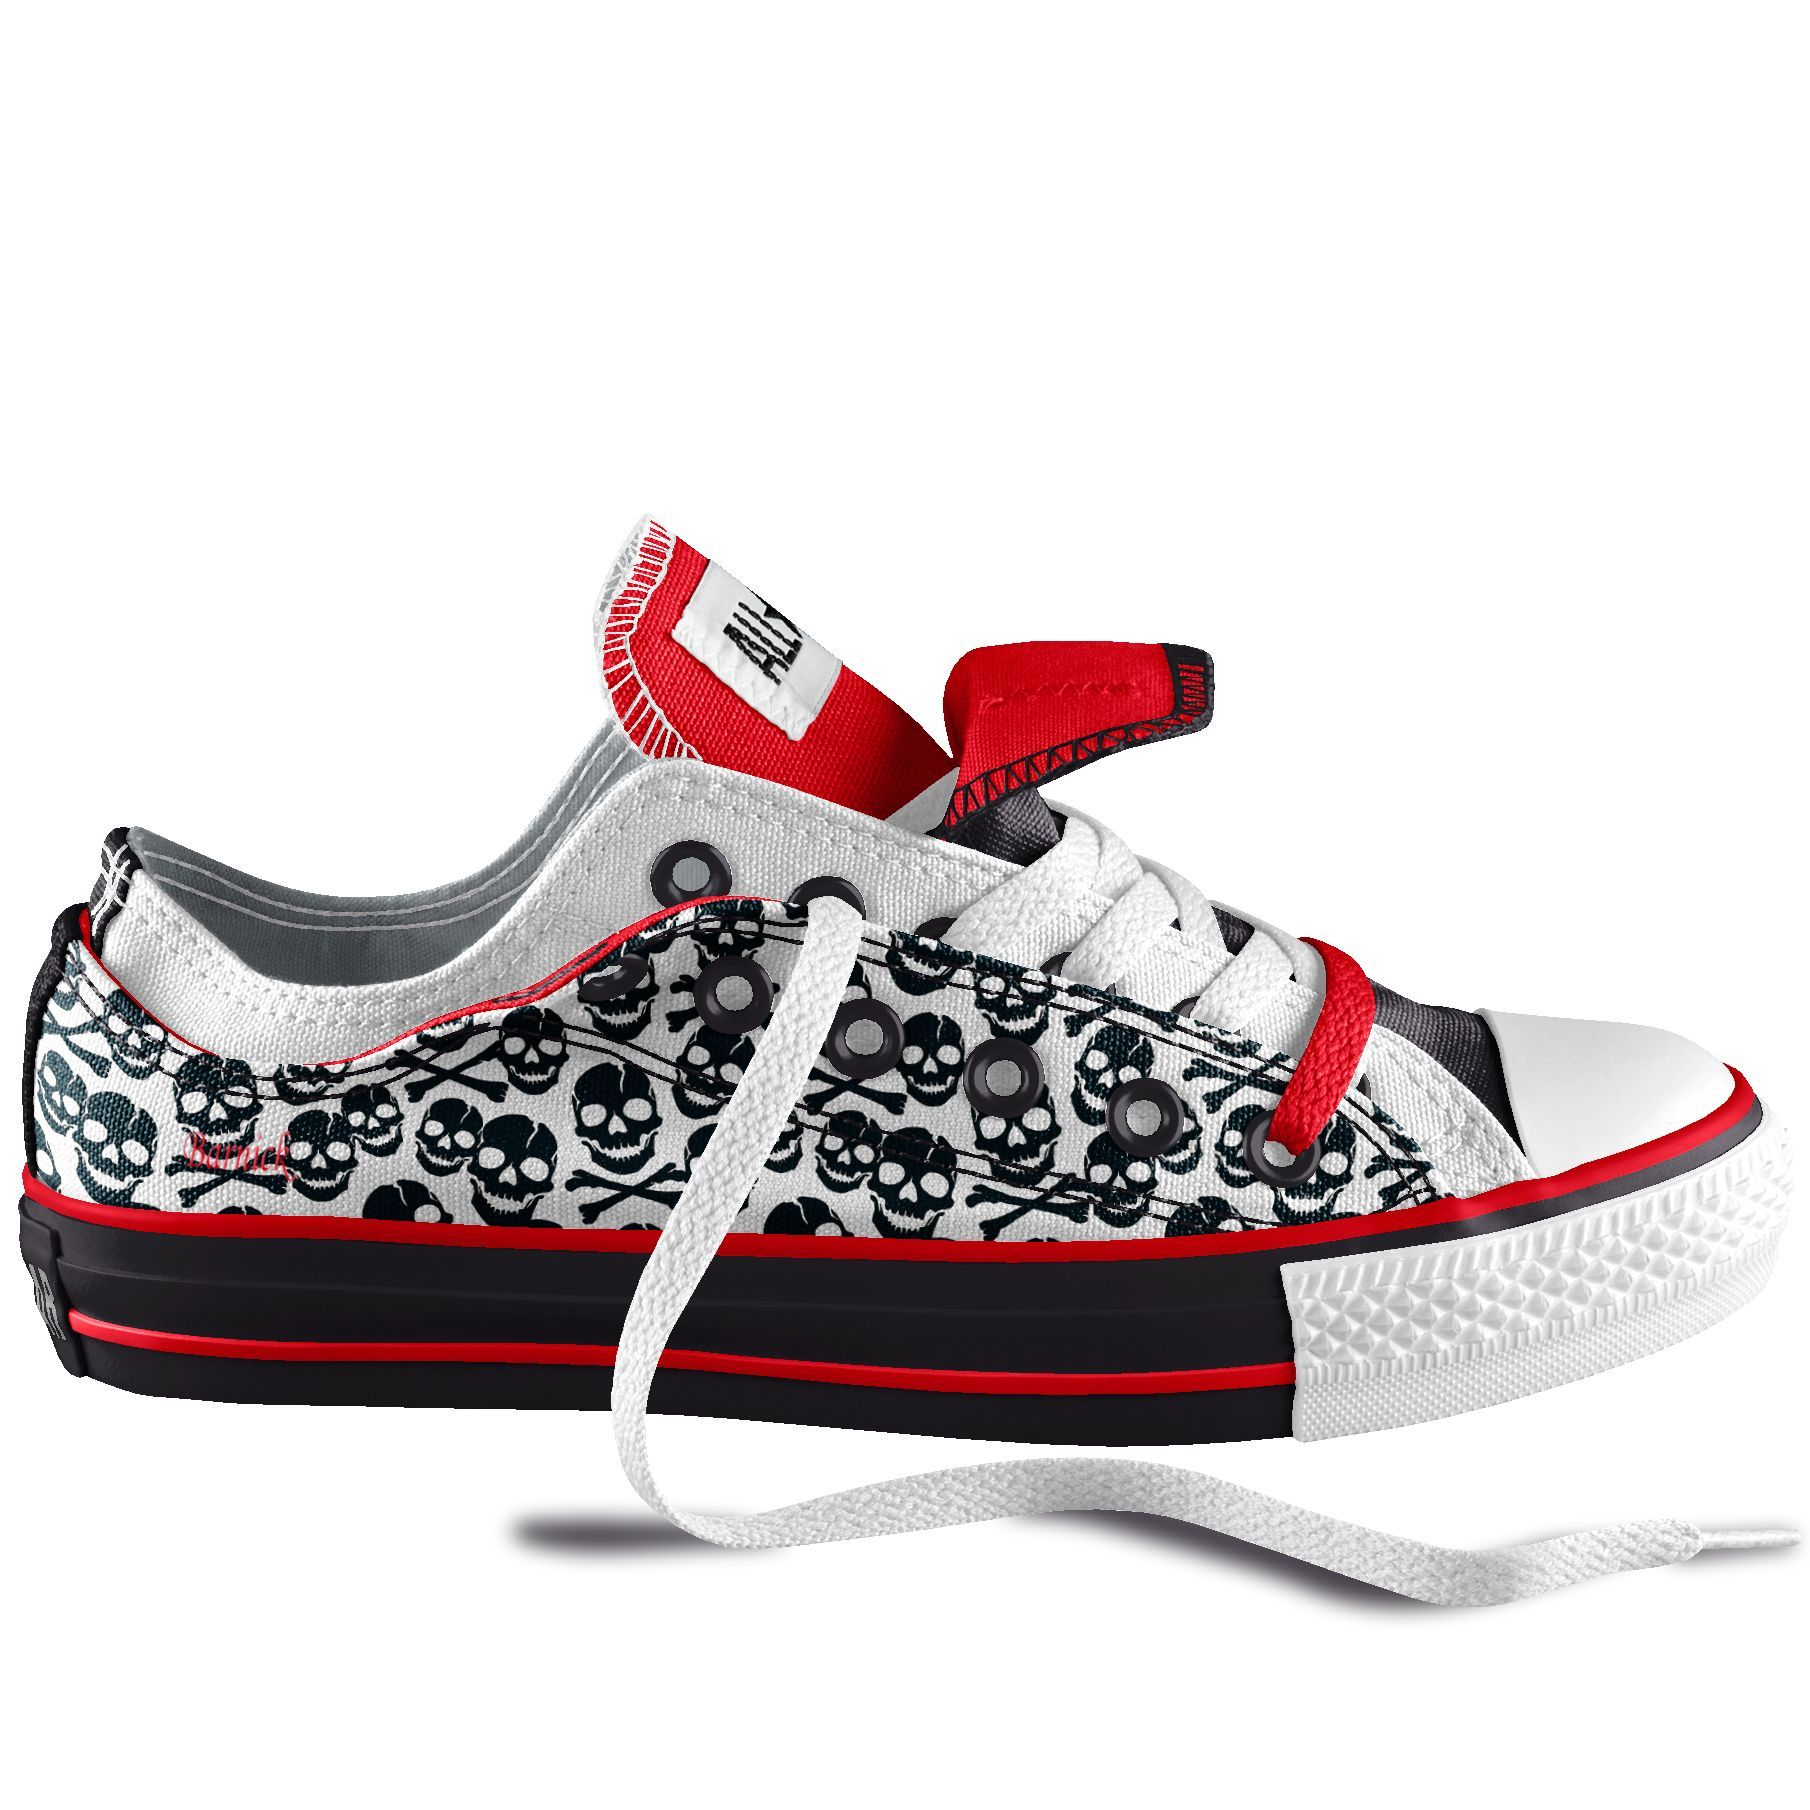 | Chuck Taylor Sneakers & Design Your Own